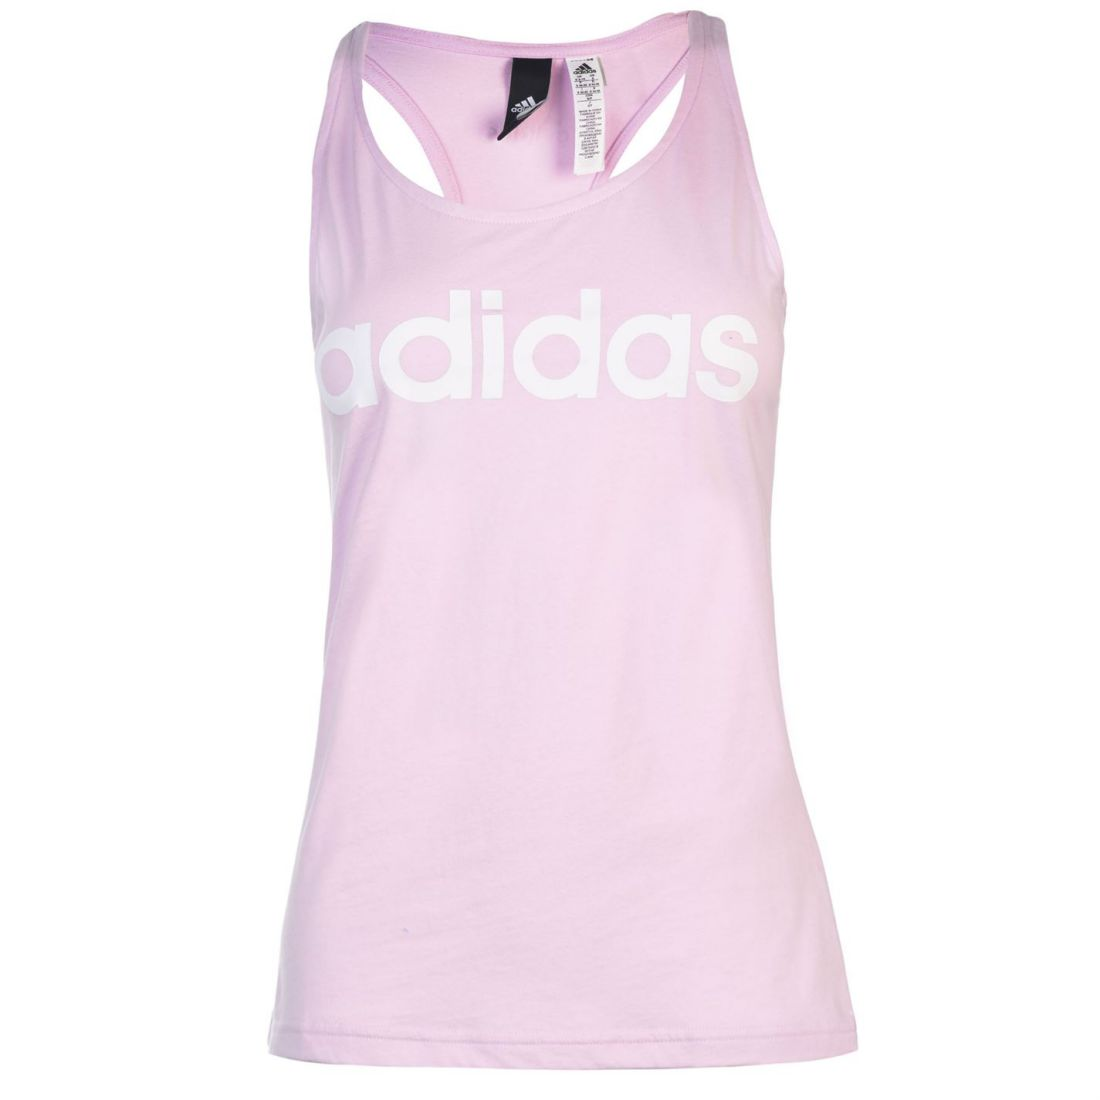 a1225c93eab Image is loading adidas-Womens-Linear-Tank-Top-Racerback-Vest-Racer-